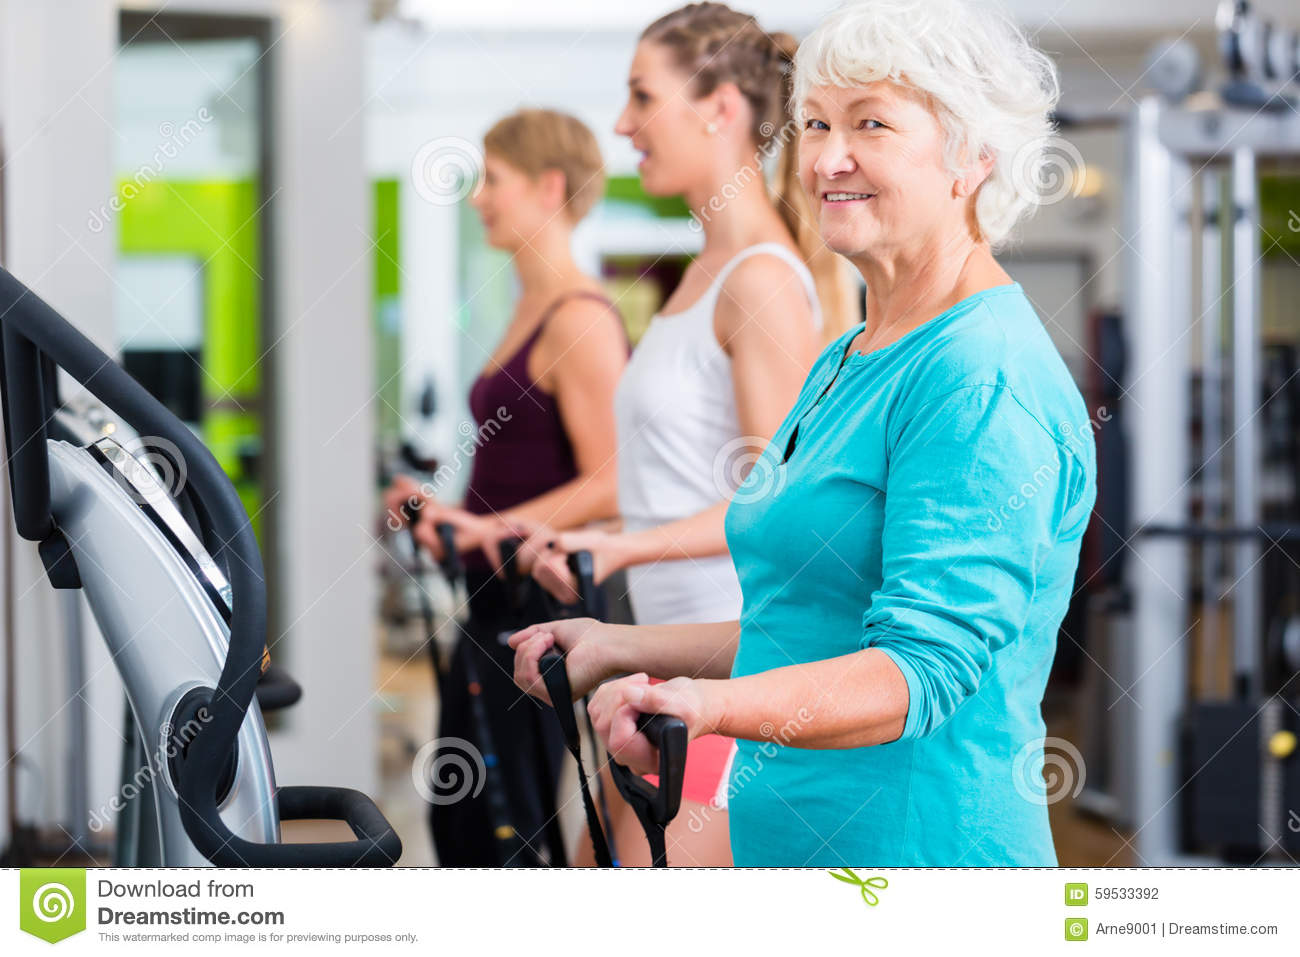 Old and young people on vibrating plates in gym